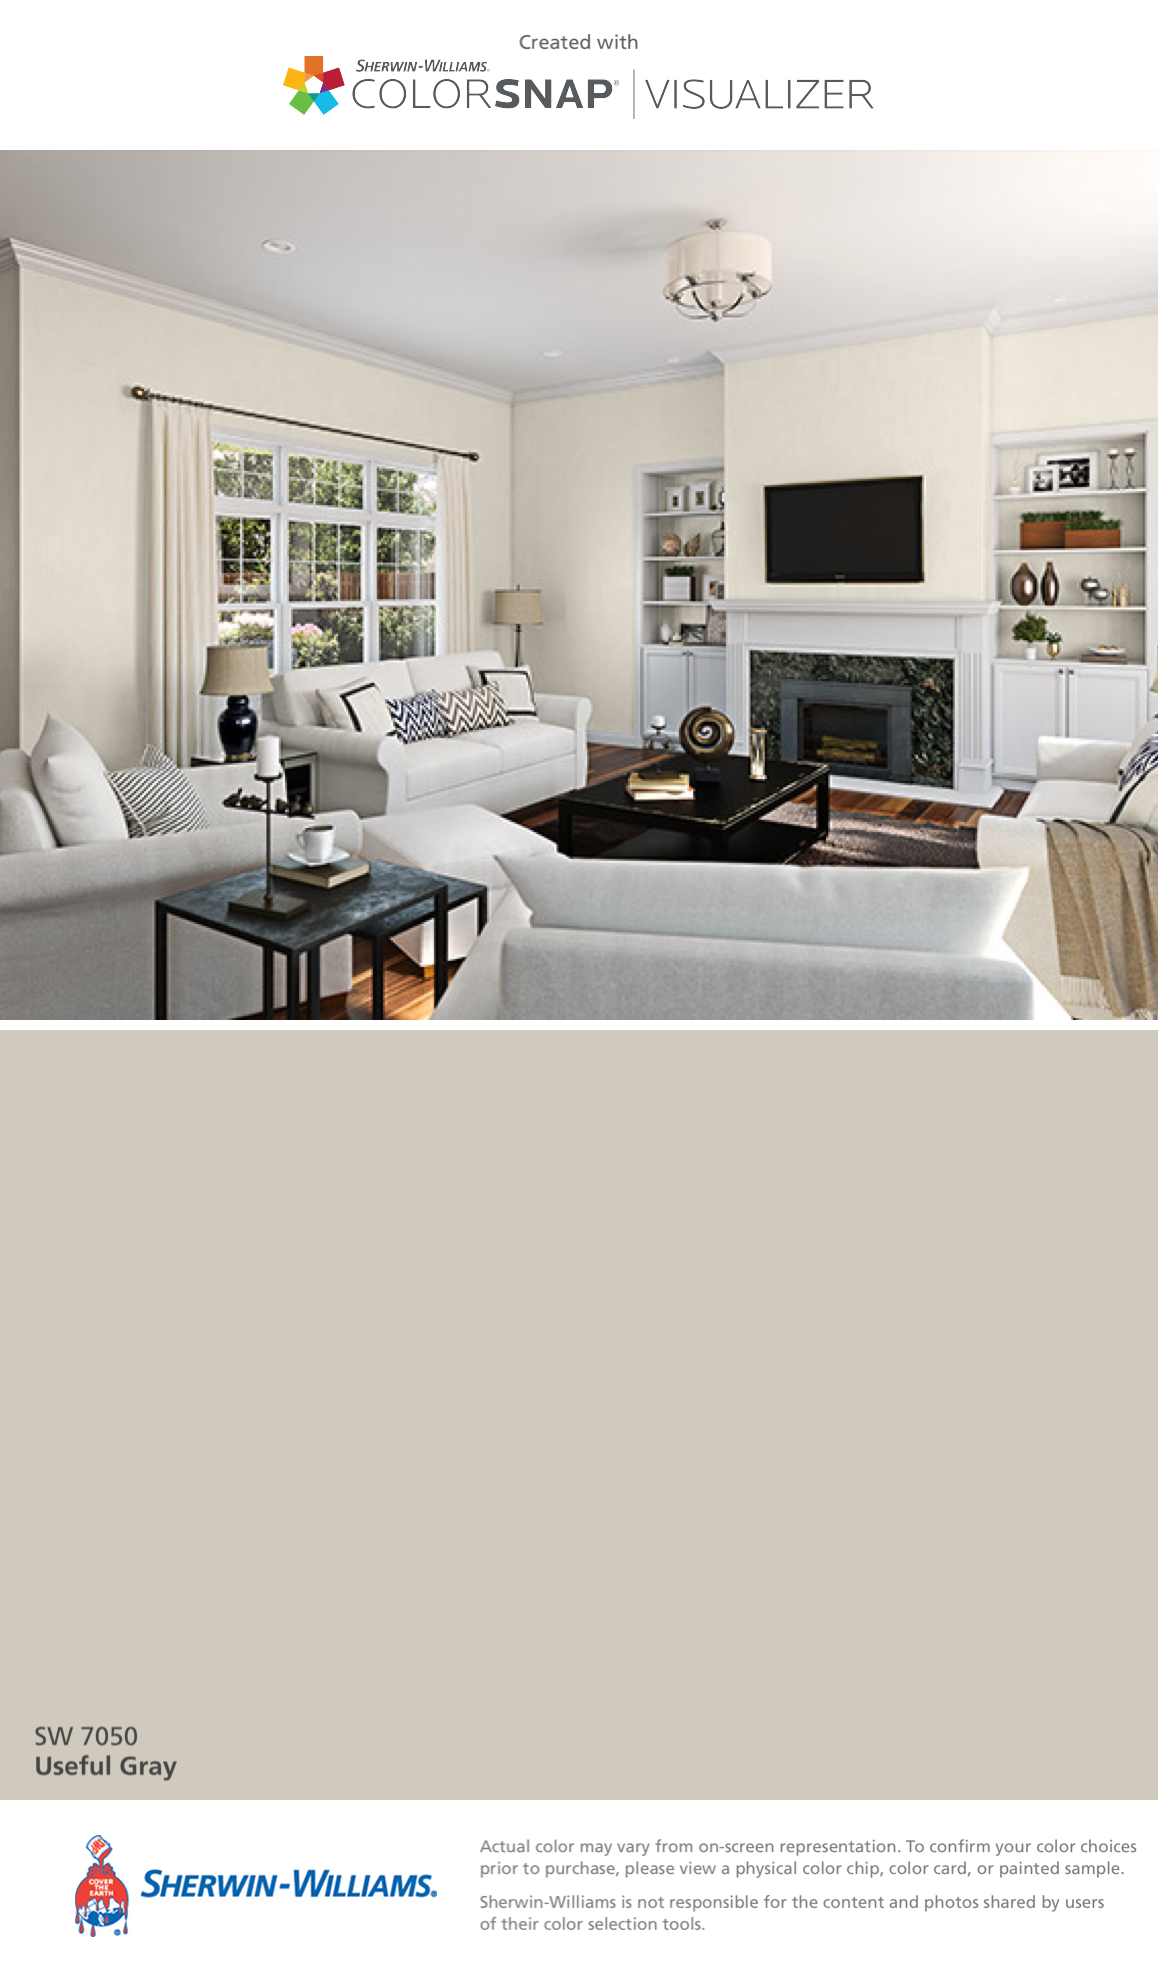 I Found This Color With ColorSnapR Visualizer For IPhone By Sherwin Williams Useful Gray SW 7050